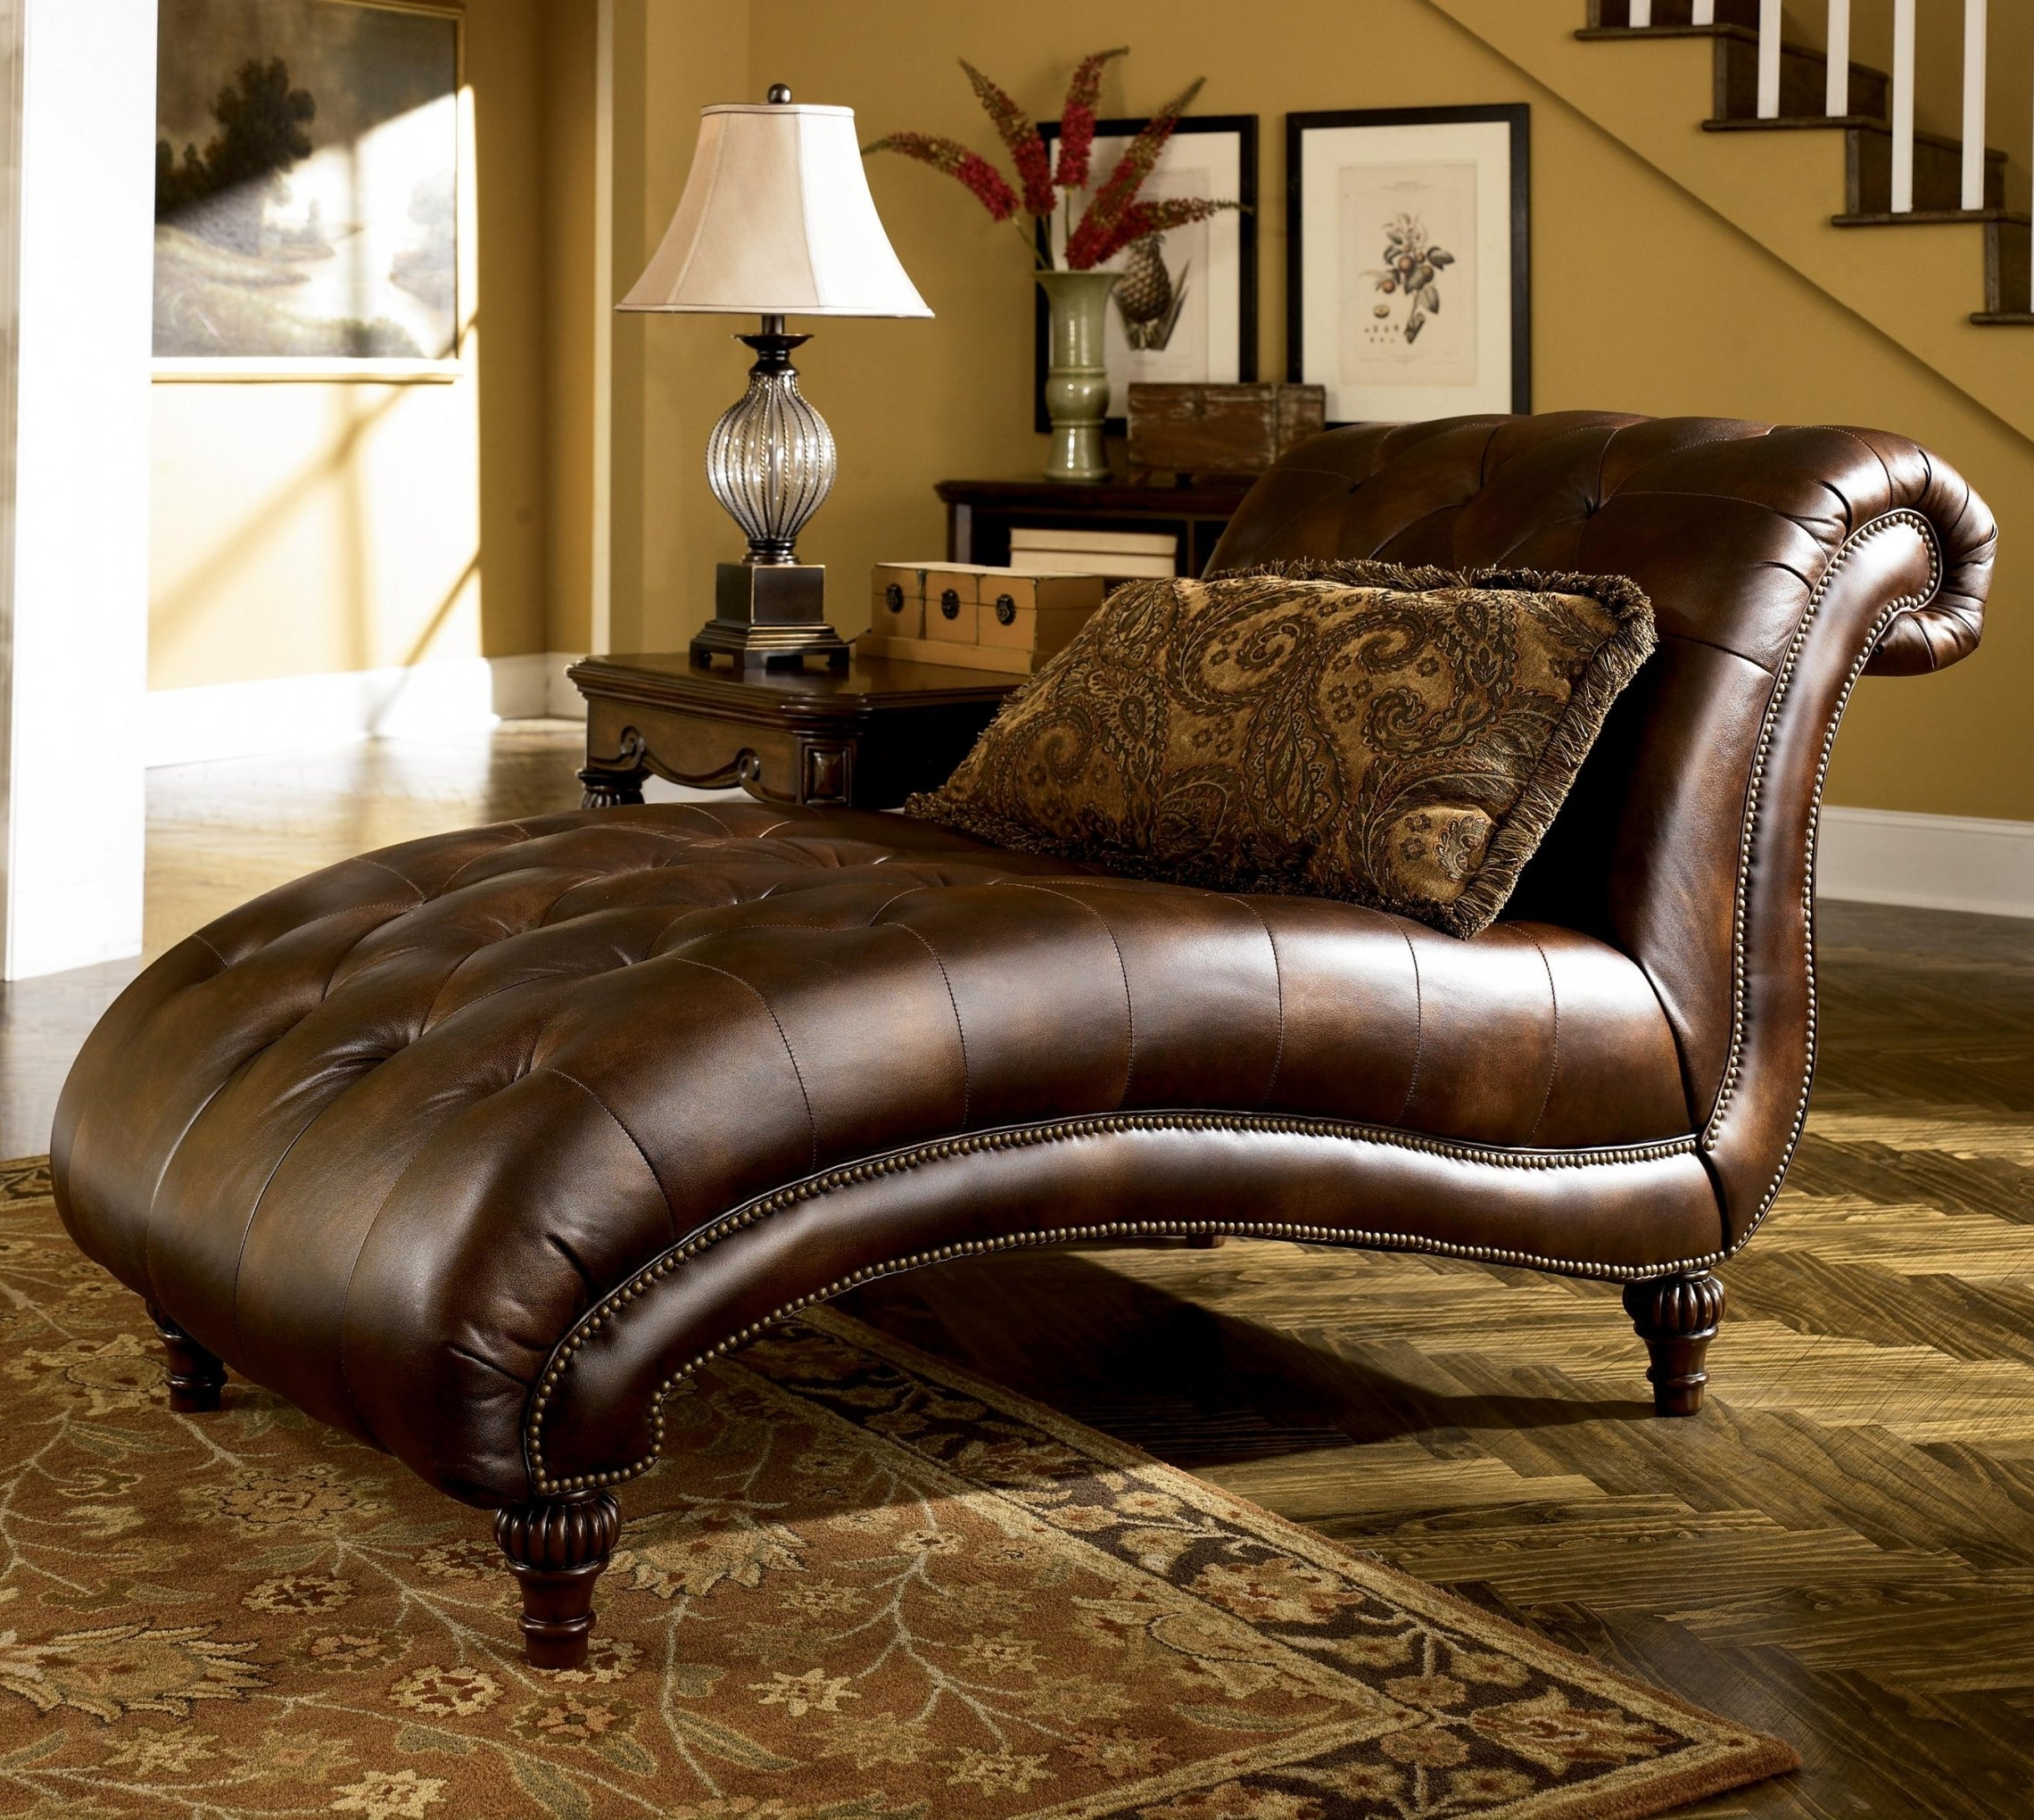 Leather Chaise Lounge Sofas Within Most Recent Leather Chaise Lounge Sofa 61 For Sofas And Couches Set With (View 4 of 15)